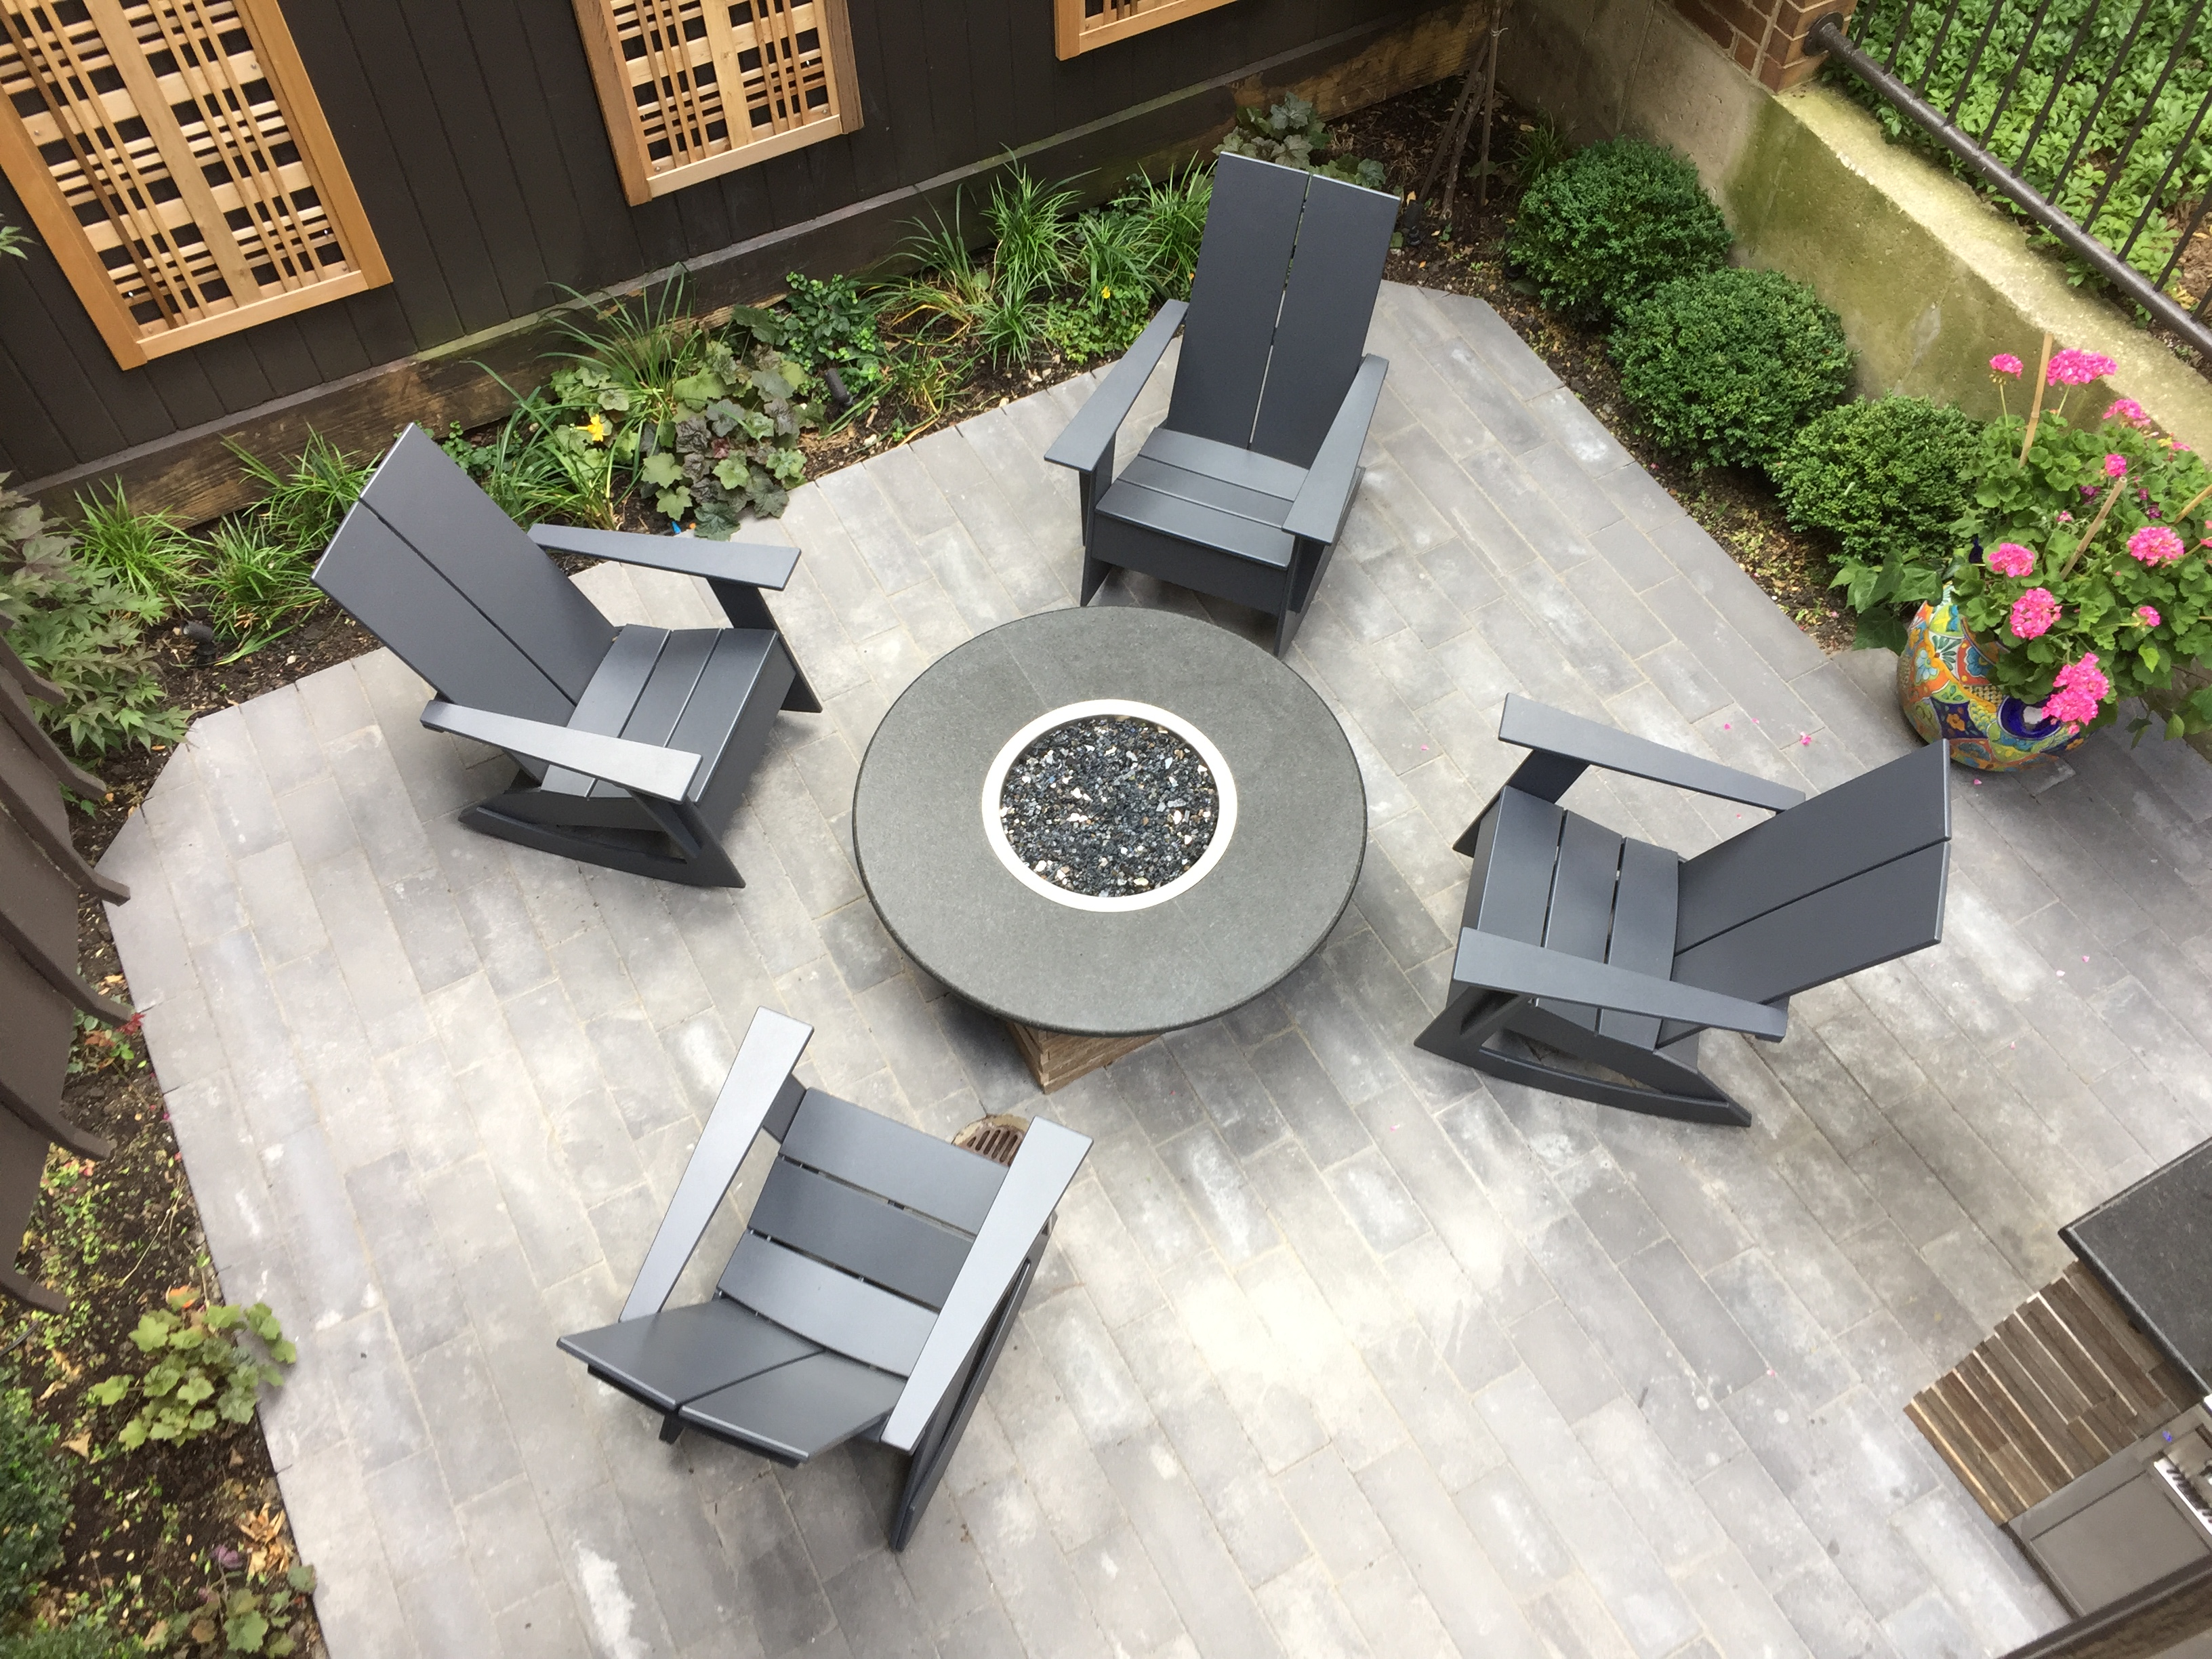 Check out WGN Radio Personality Roe Conn's new Belgard Patio built by Archadeck Thumbnail